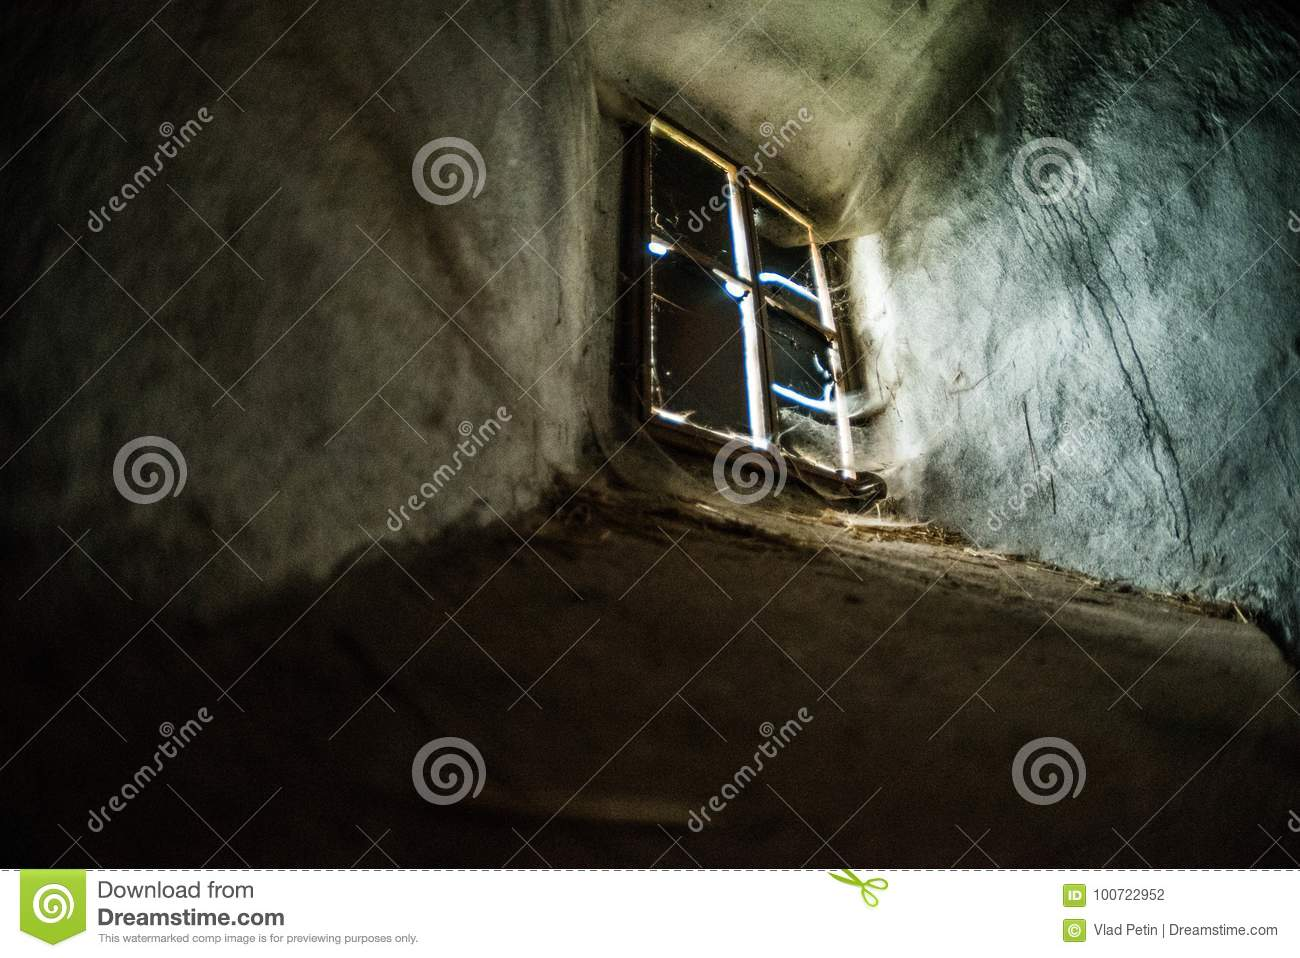 Mystical interior. Window in dark castle dungeon